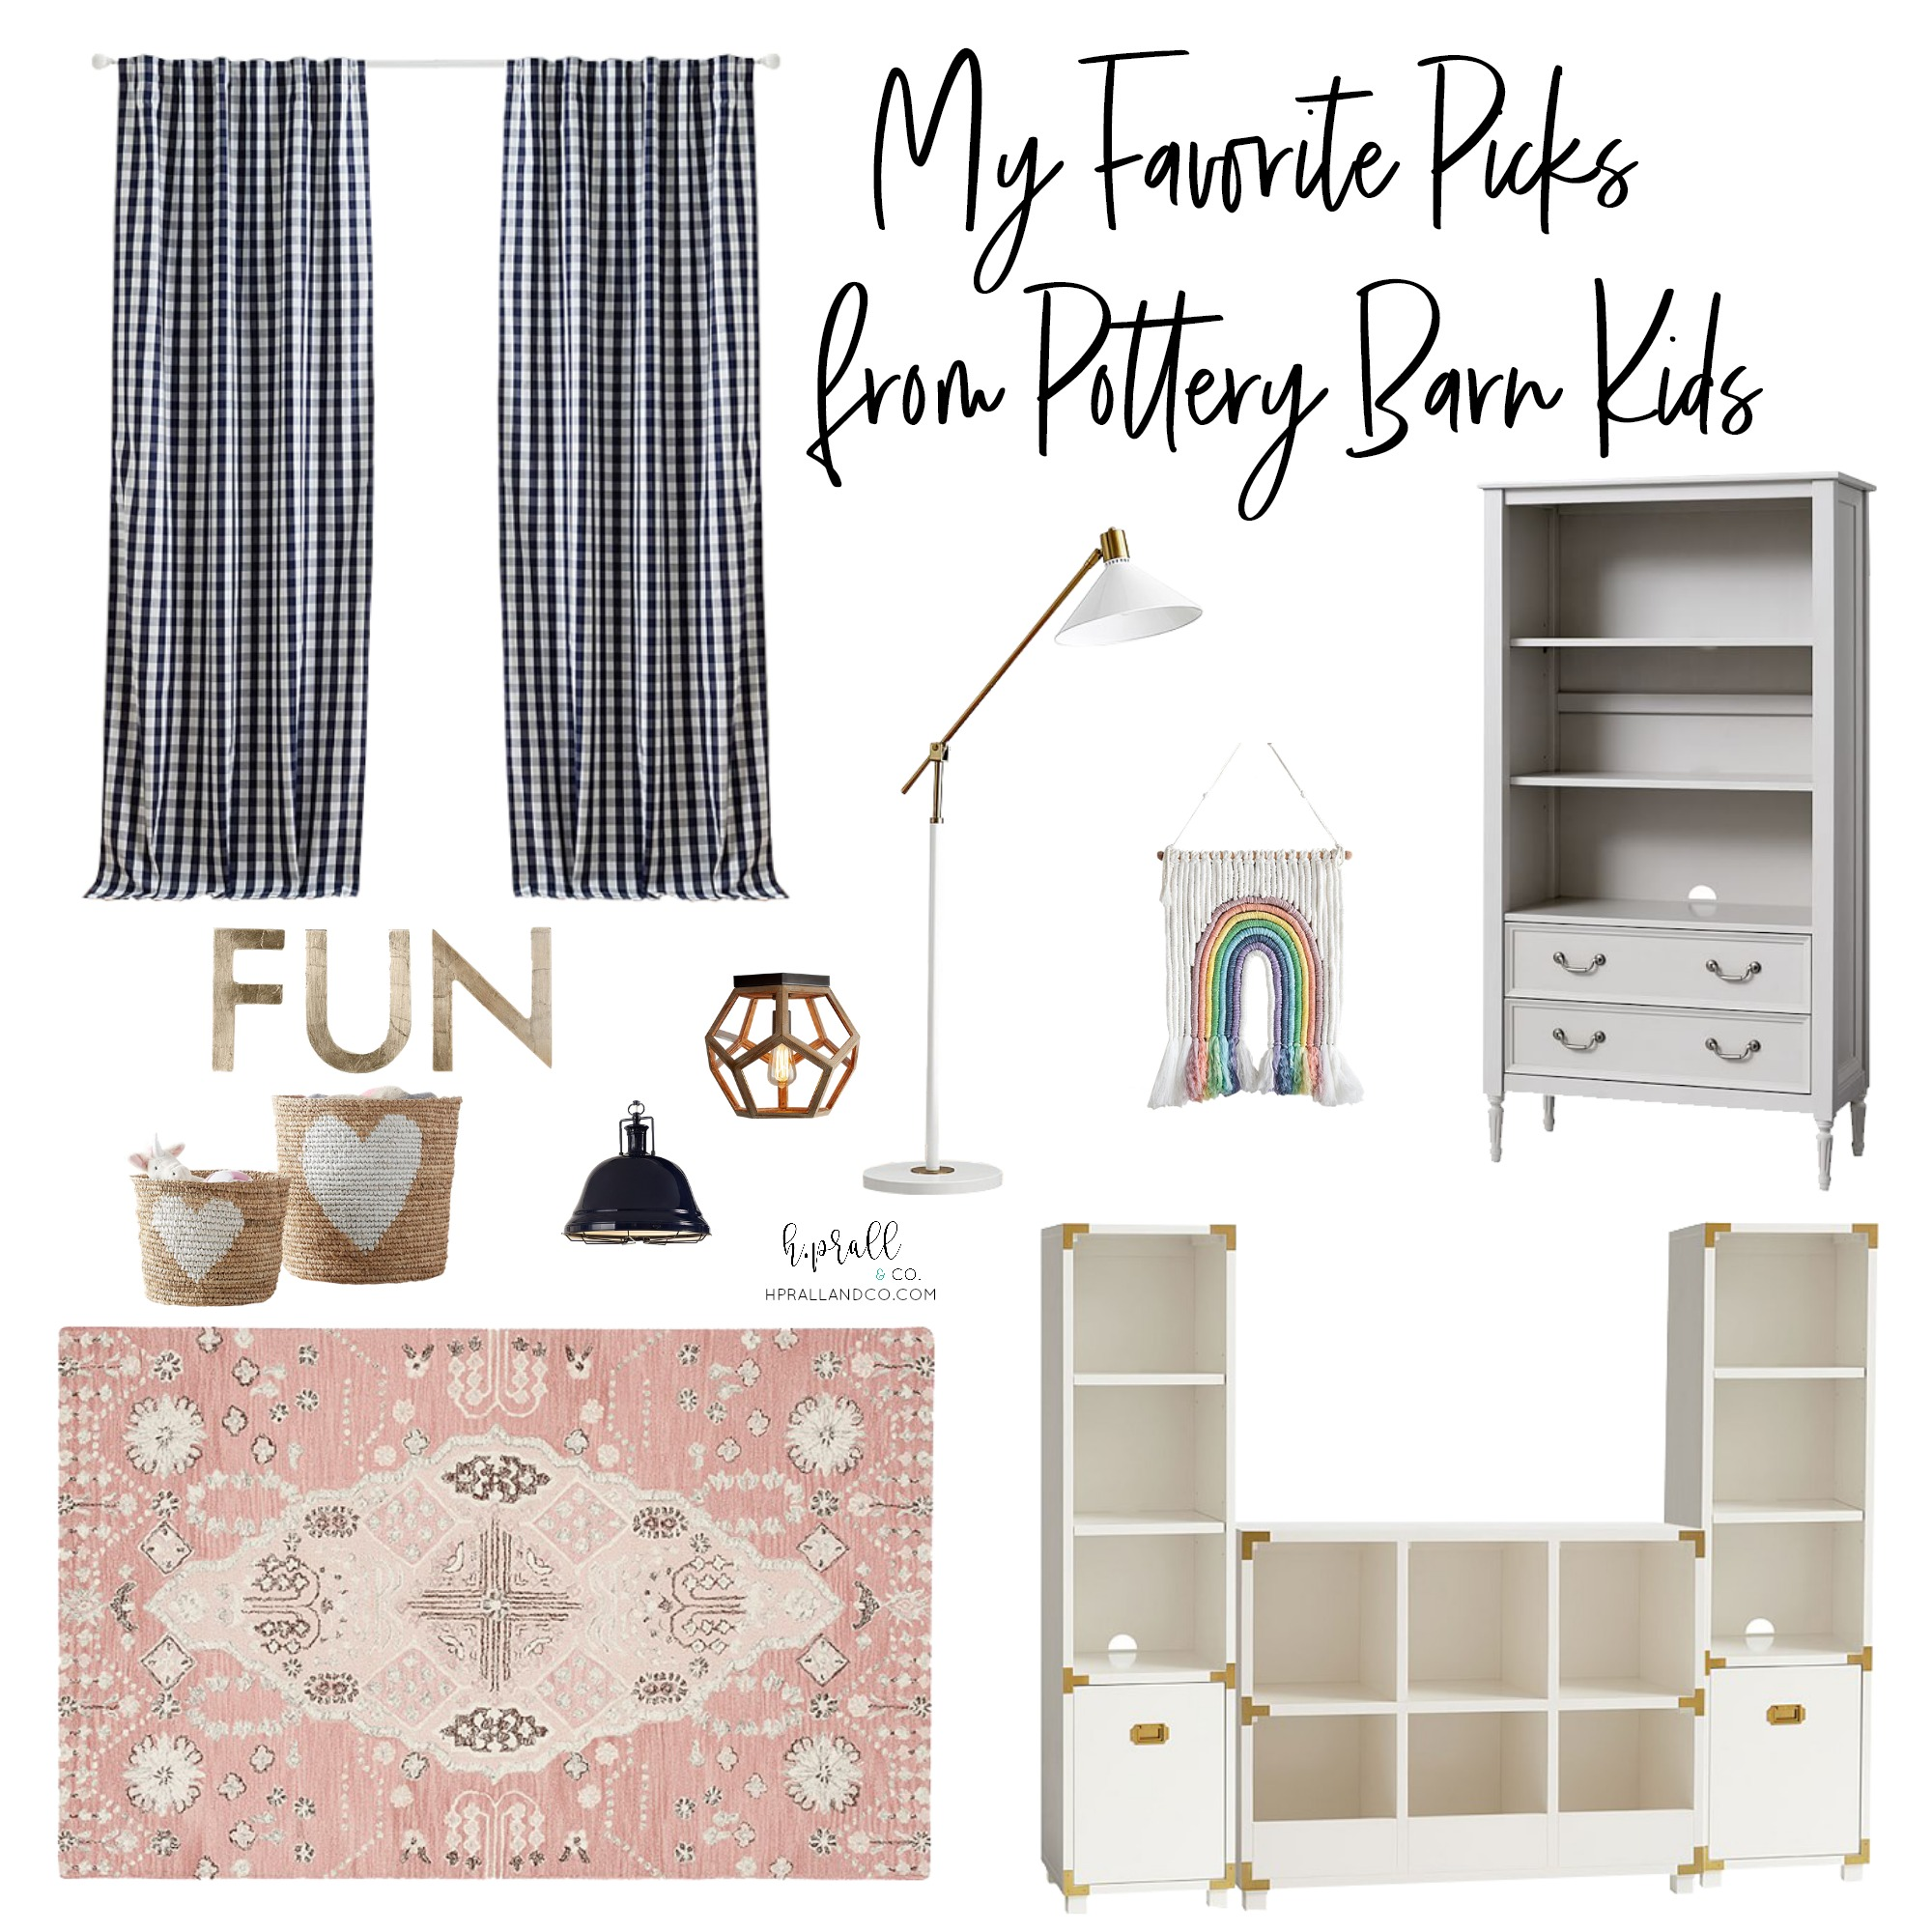 I'm sharing my favorite picks from Pottery Barn Kids at hprallandco.com!